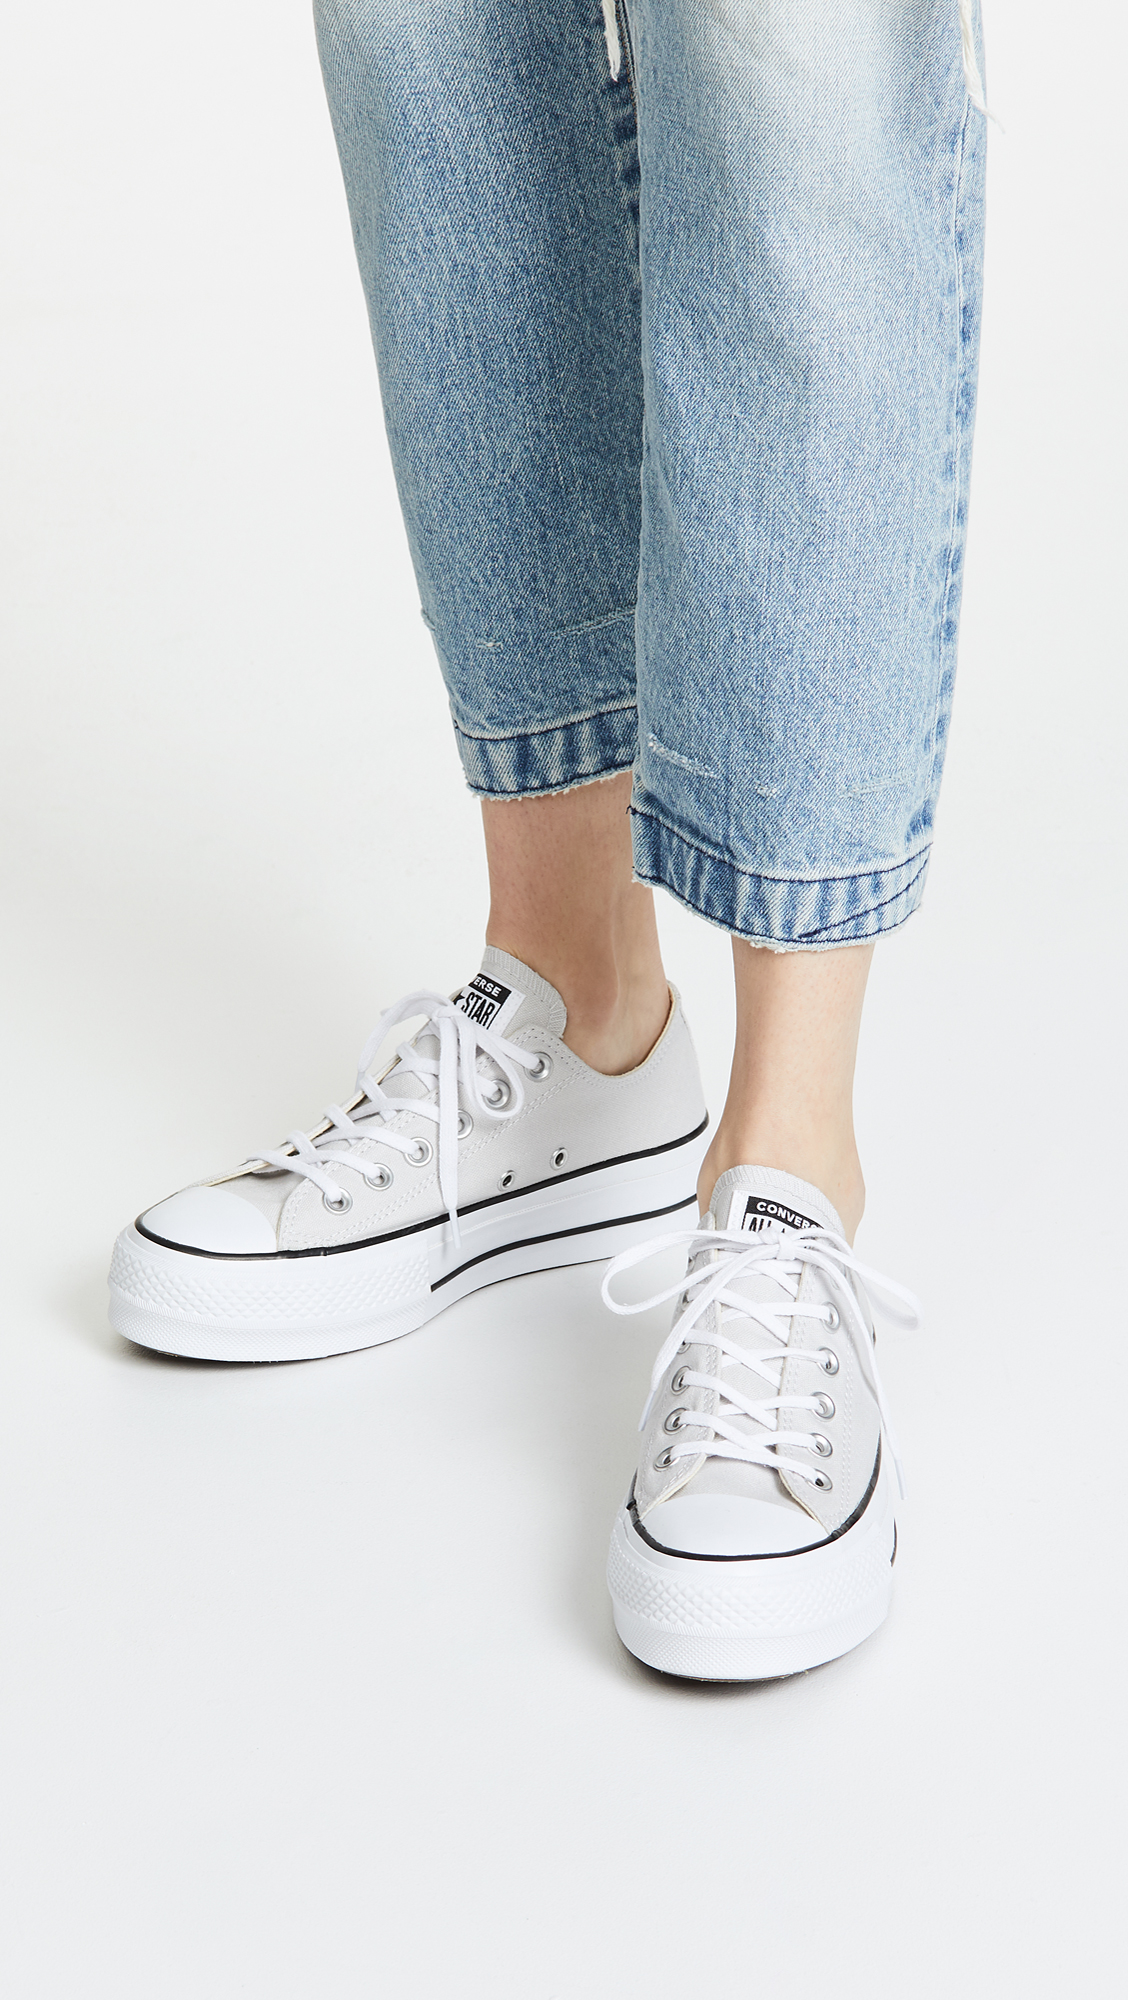 bbecfaf34b36 Converse Chuck Taylor All Star Lift Ox Sneakers